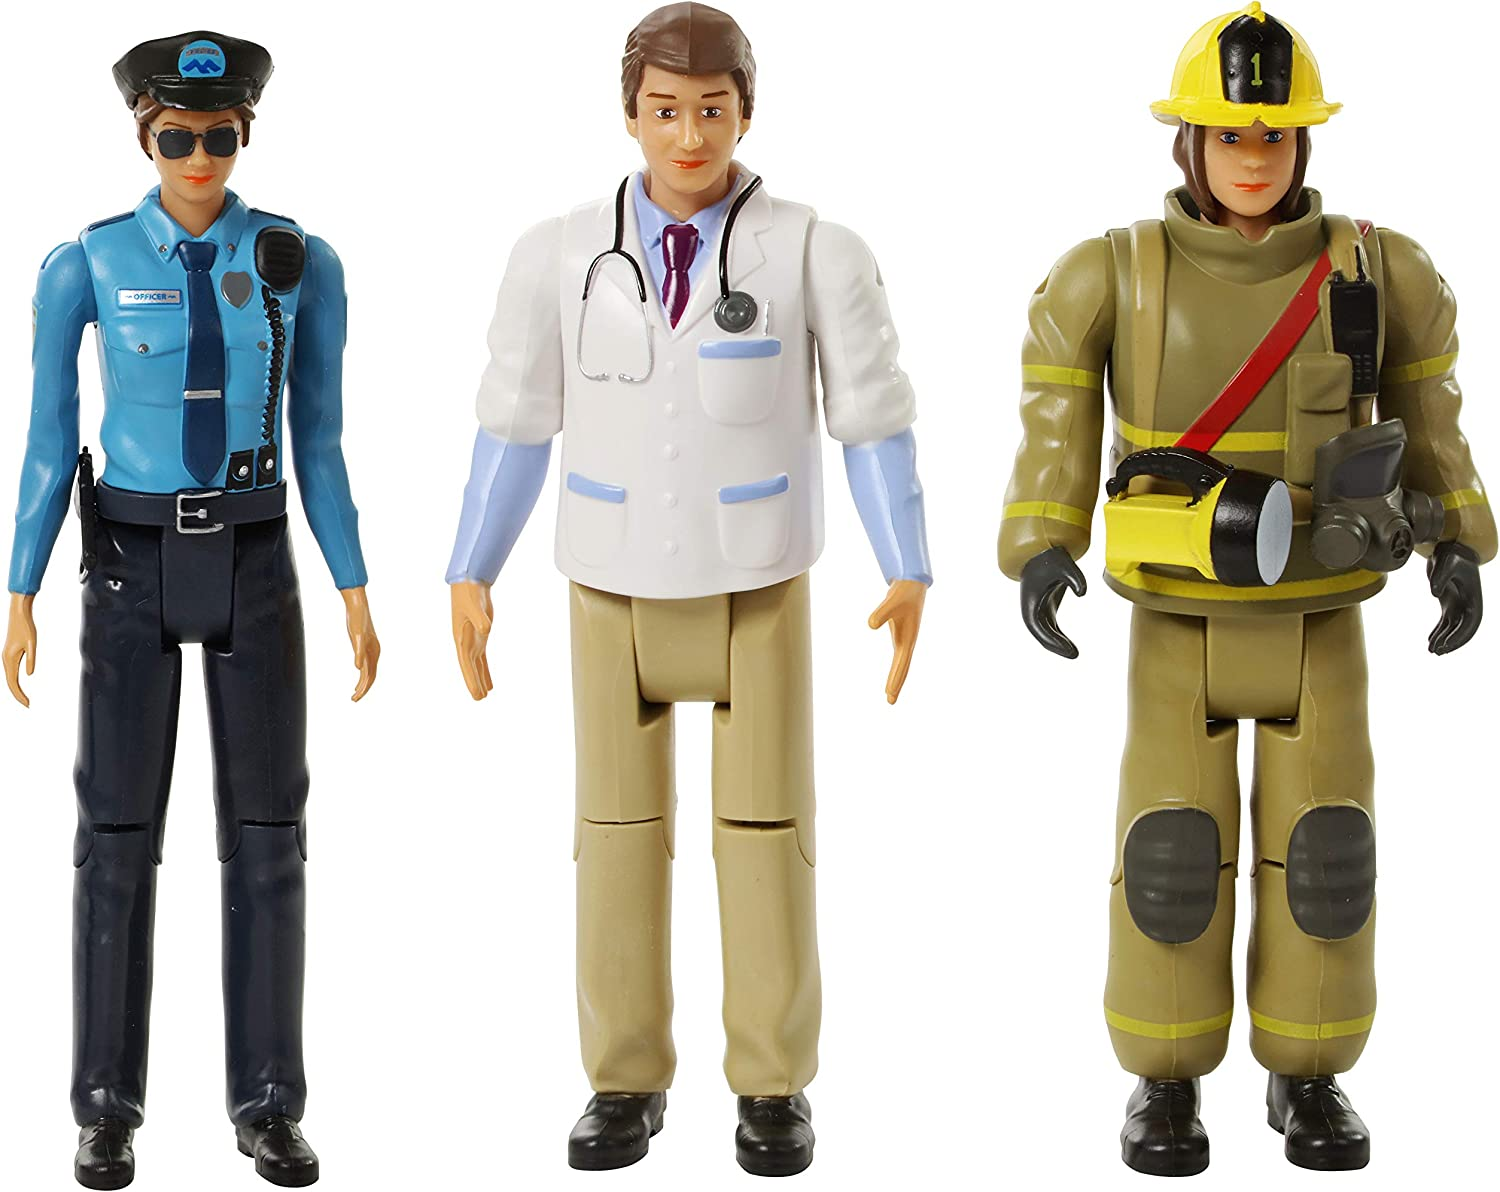 Beverly Hills Doll Collection Sweet Li'l Family Firefighter, Police Officer, Doctor Dollhouse Figures - Emergency Action People Set, Pretend Play for Kids and Toddlers